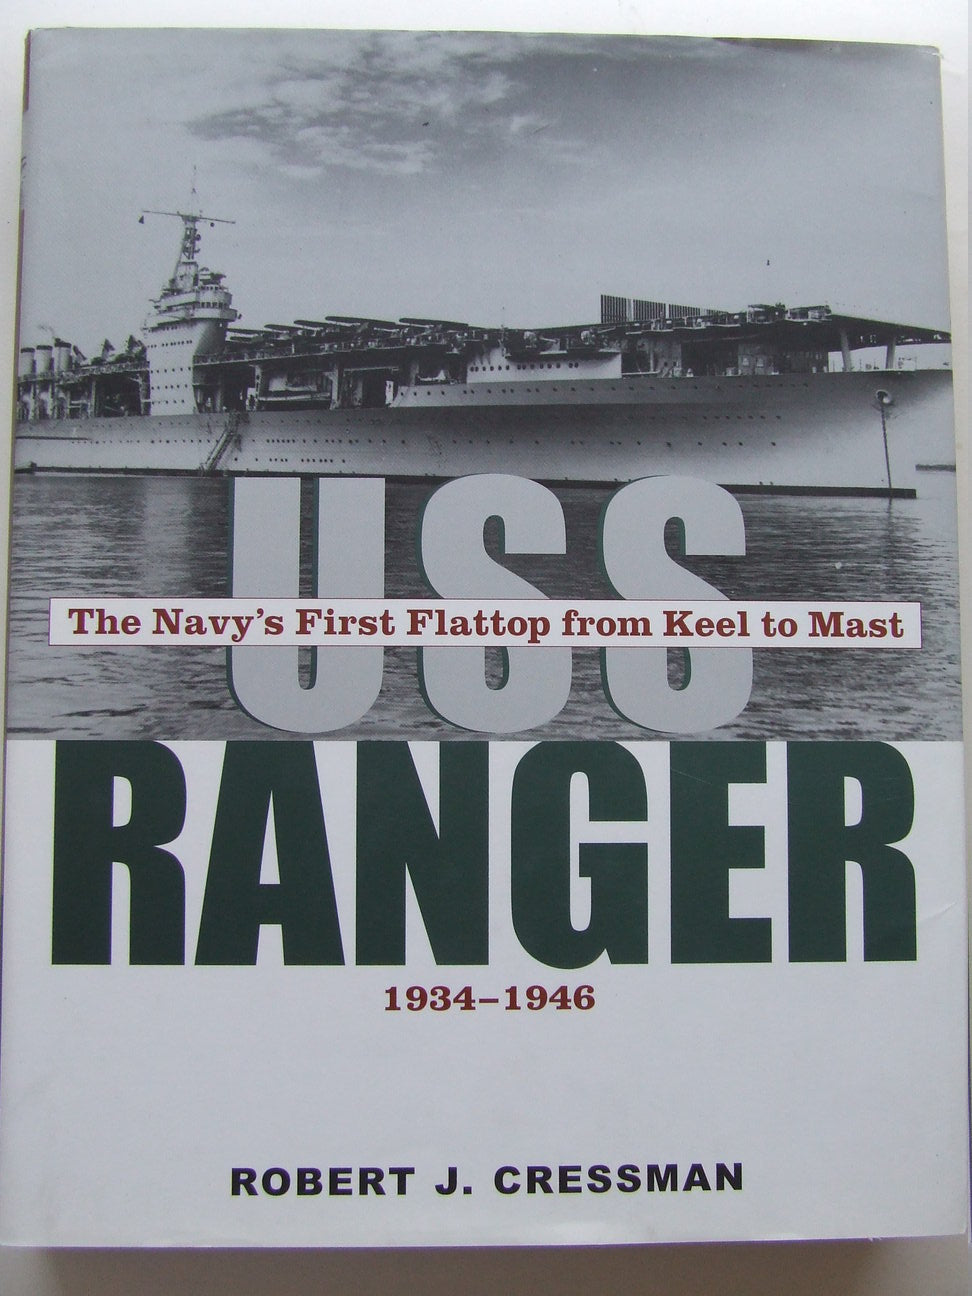 USS Ranger, the navy's first flattop from keel to mast 1934-1946